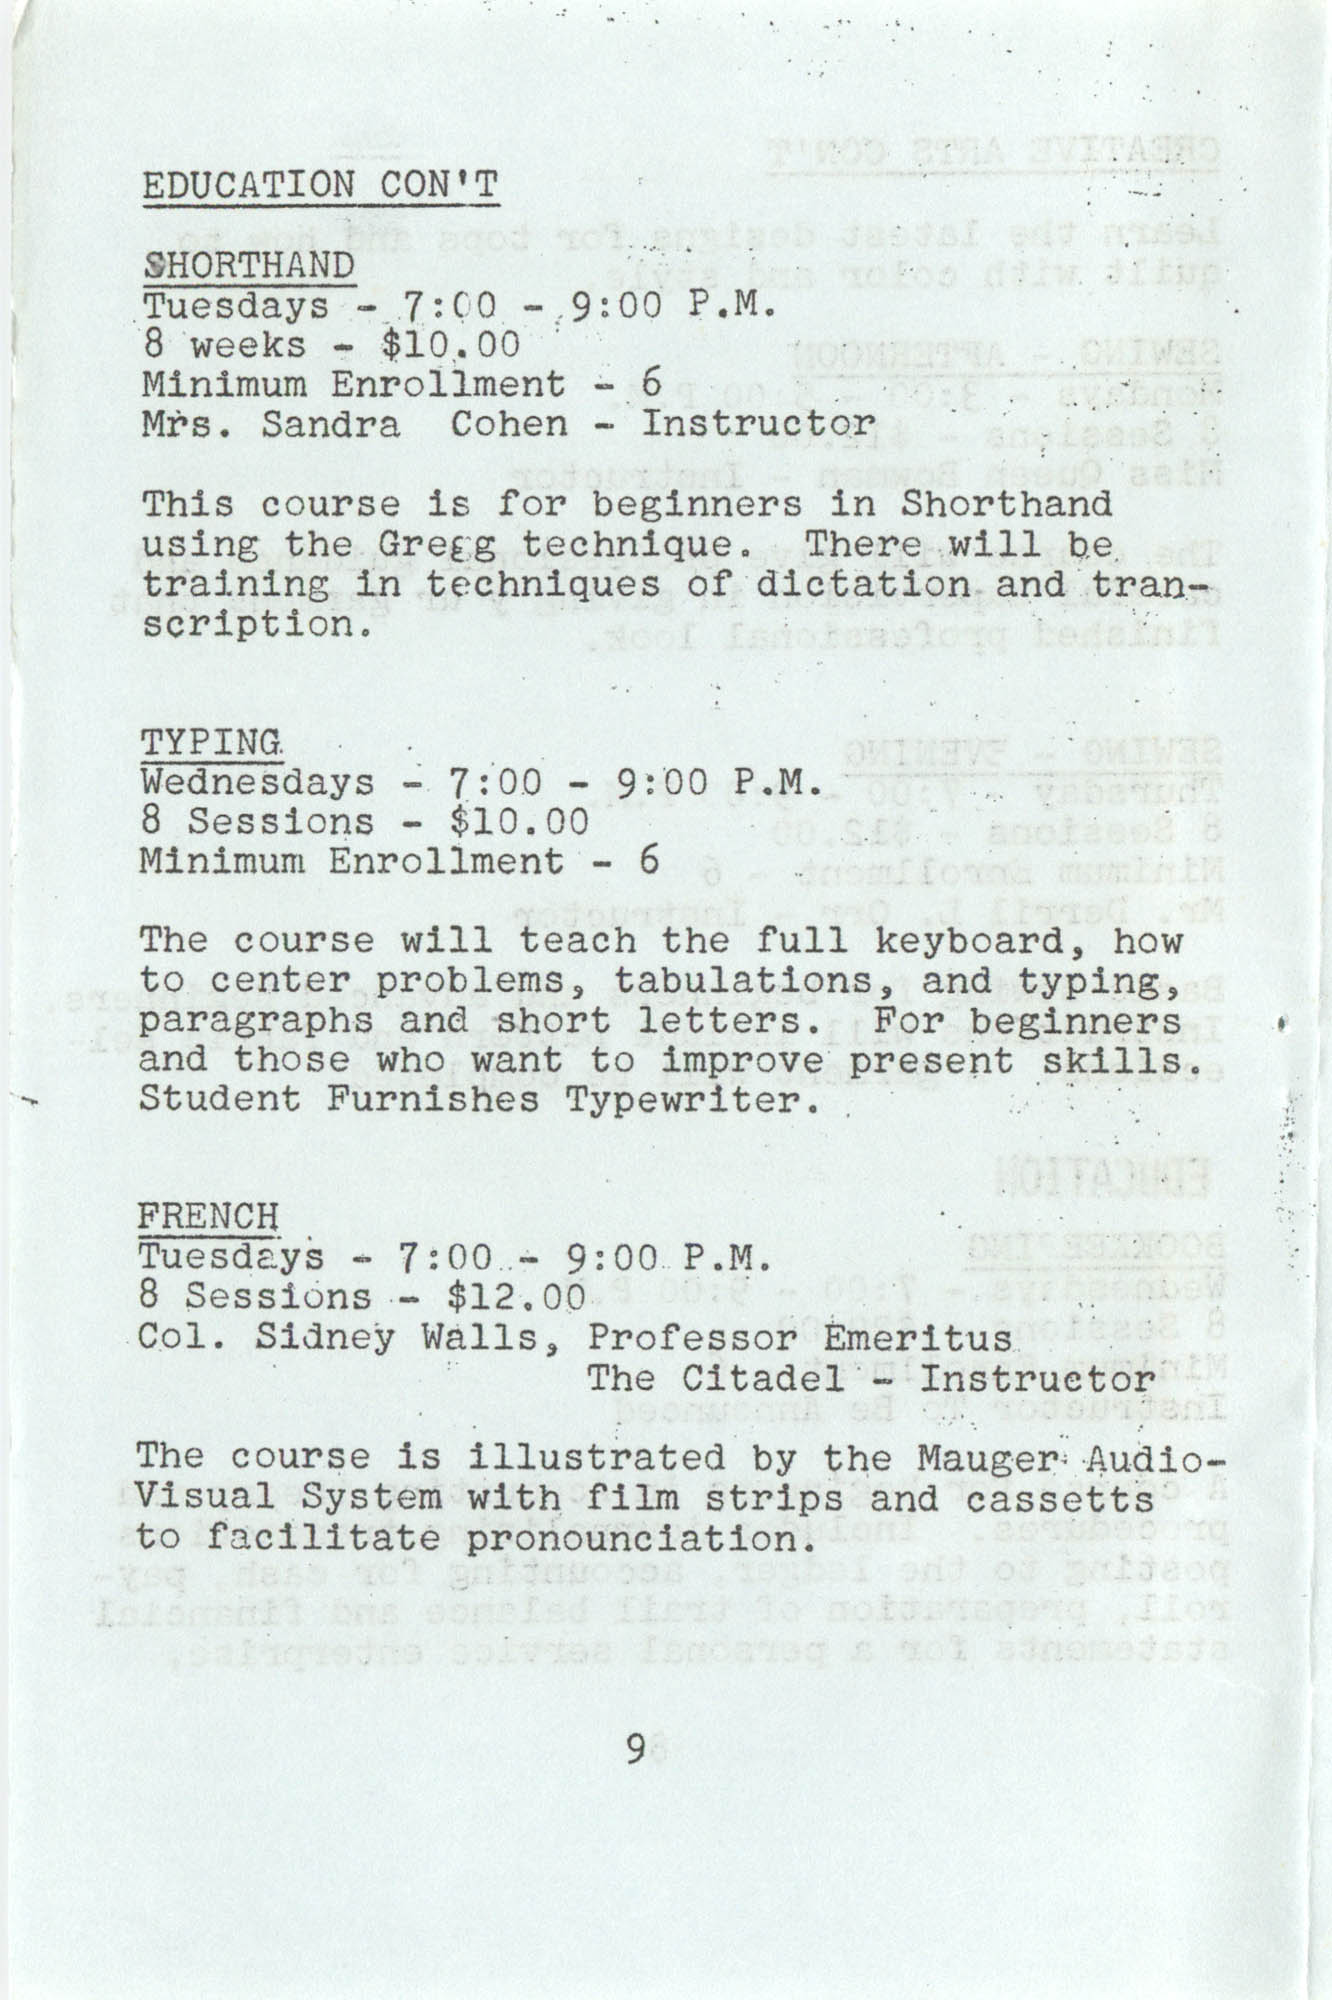 Spring 1975 Schedule, Y.W.C.A. of Greater Charleston, Page 9